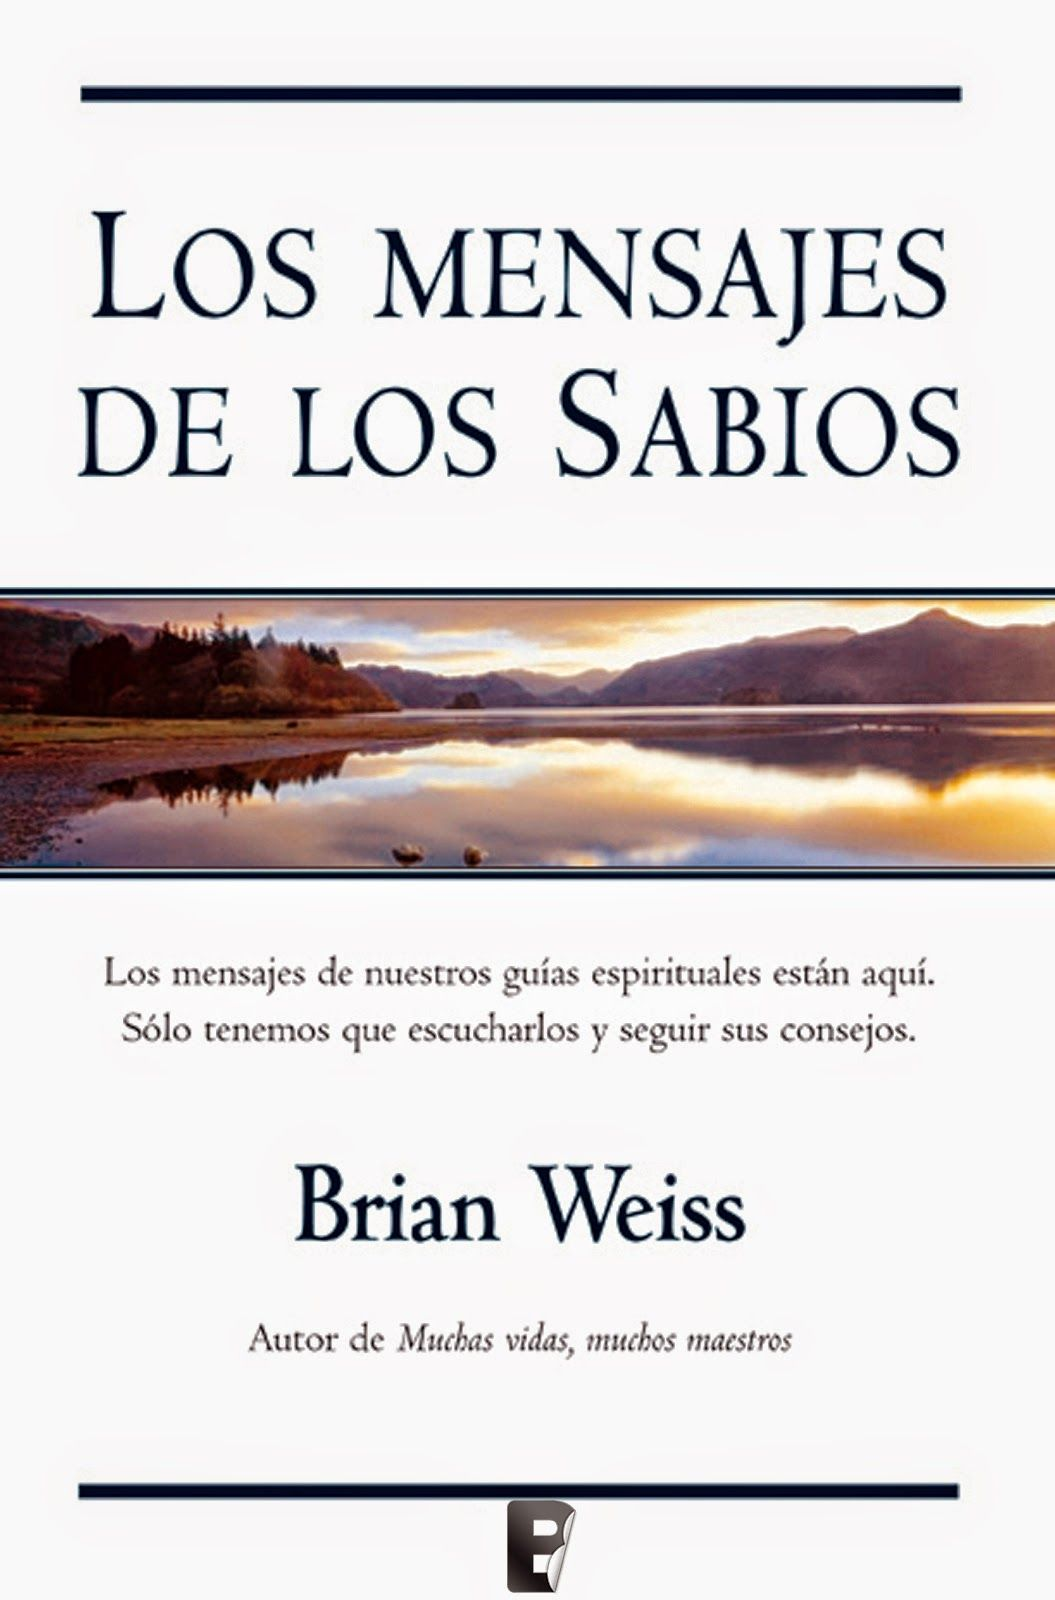 Descargar Libros Completos De Google Books Abundancia Amor Y Plenitud Libros Para Descarga Quotmuchas